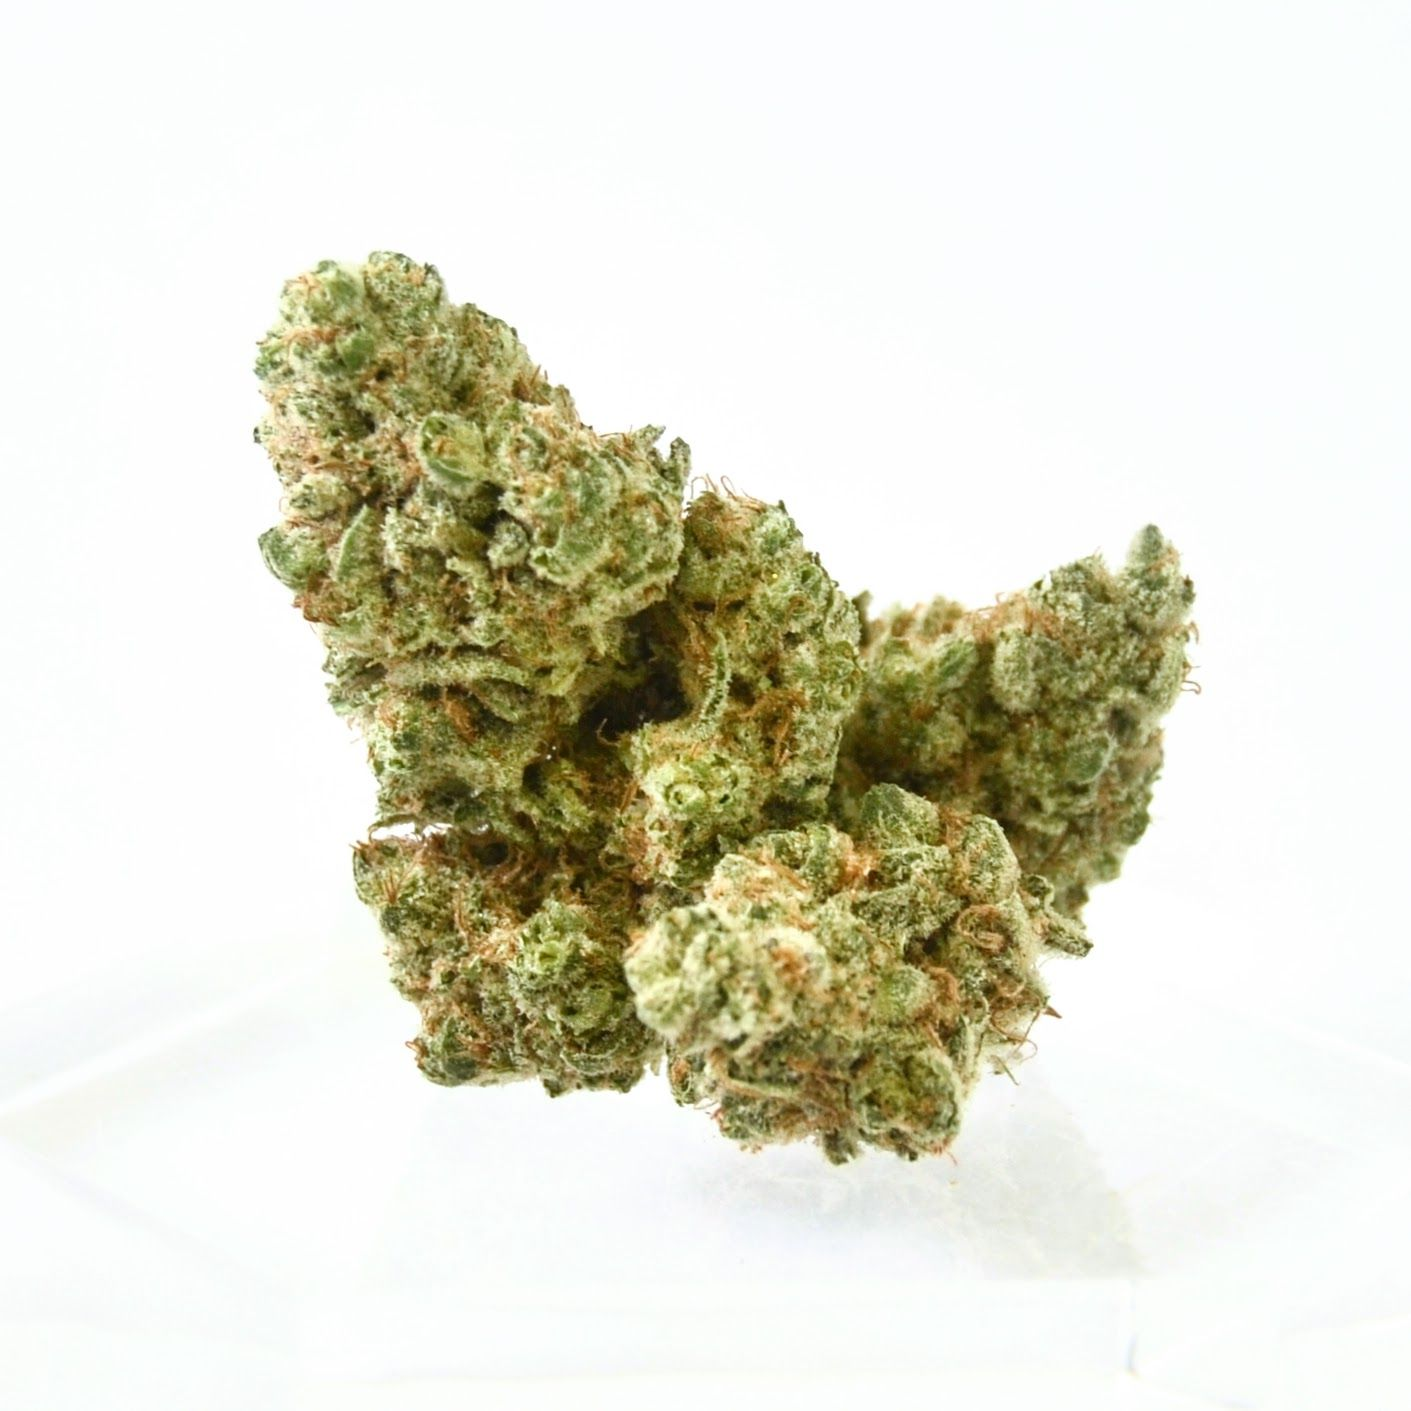 Avitas - Strawberry Fields, Indica *Was $12/g*